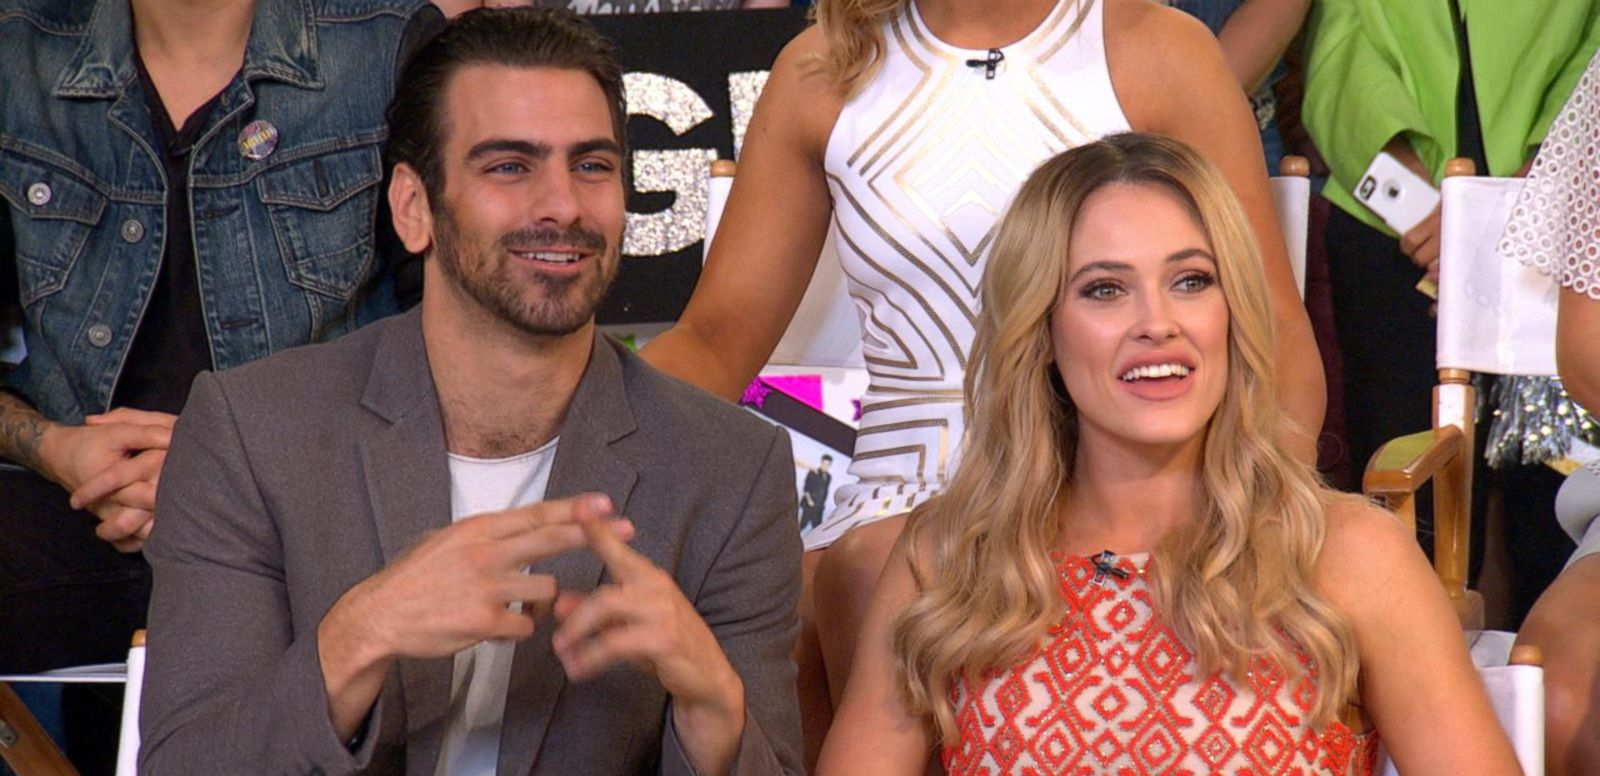 VIDEO: 'DWTS' Finale: Mirror Ball Champion in Live on 'GMA'!